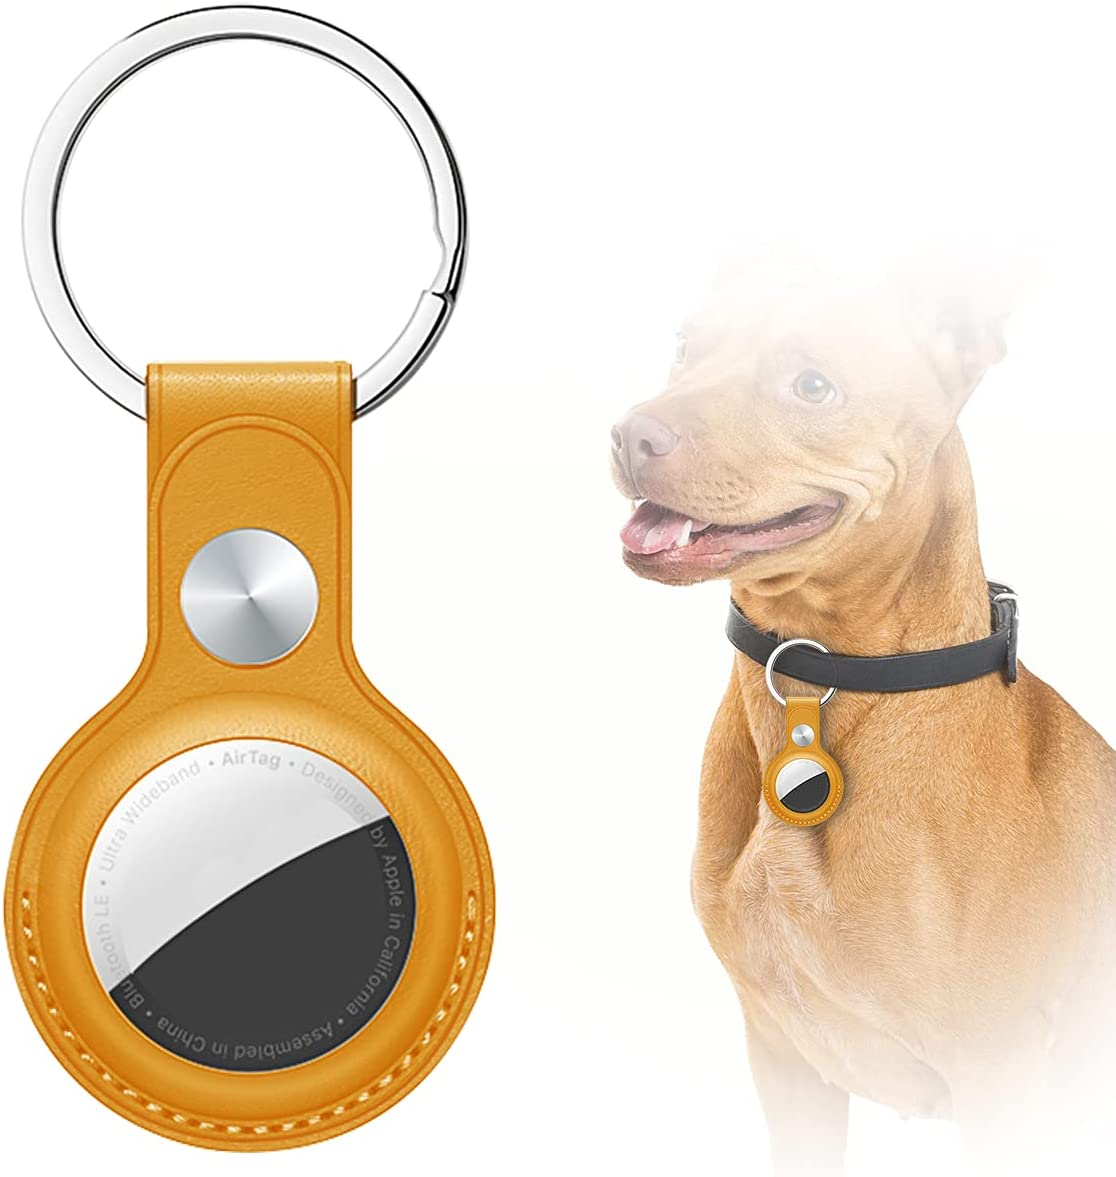 AICase Case for AirTag with Keychain Ring, Protective Leather Holder Tracker Cover with Keyring Compatible with Apple New Air Tag 2021 for Pets, Keys, Luggage, Backpacks